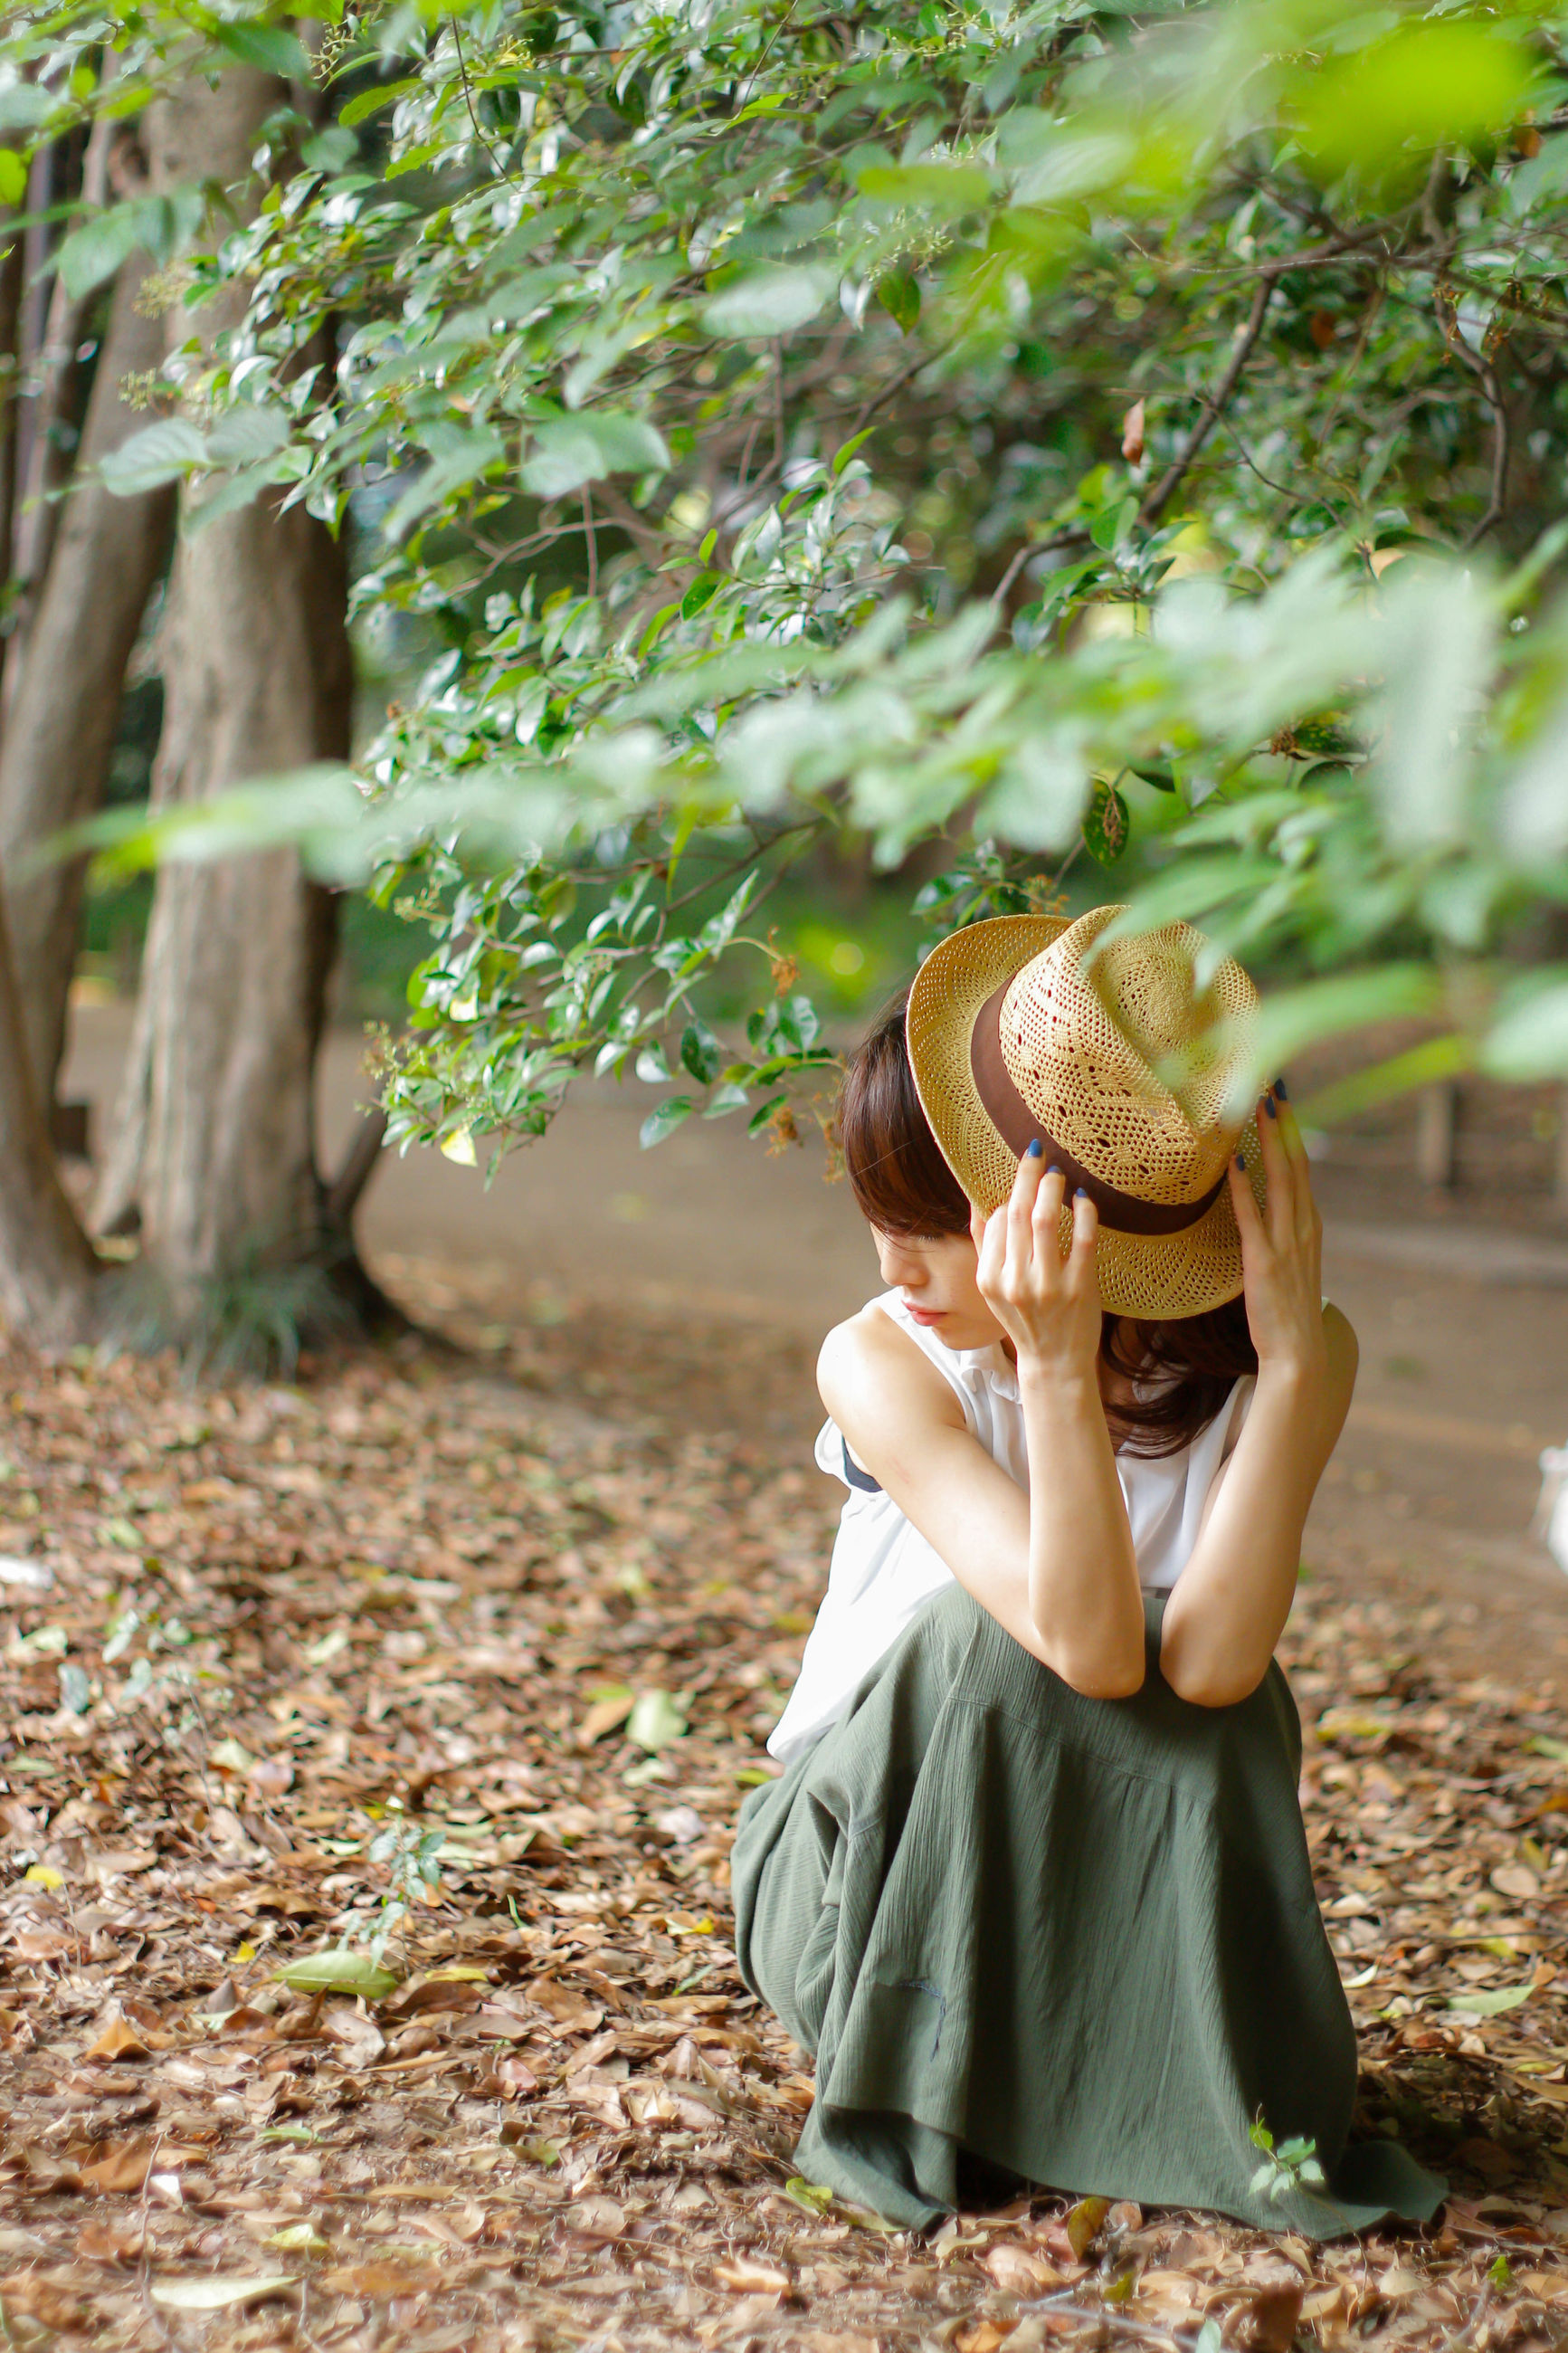 hat, real people, young women, one person, lifestyles, women, young adult, leisure activity, full length, field, day, outdoors, nature, plant, tree, leaf, fashion, beauty in nature, people